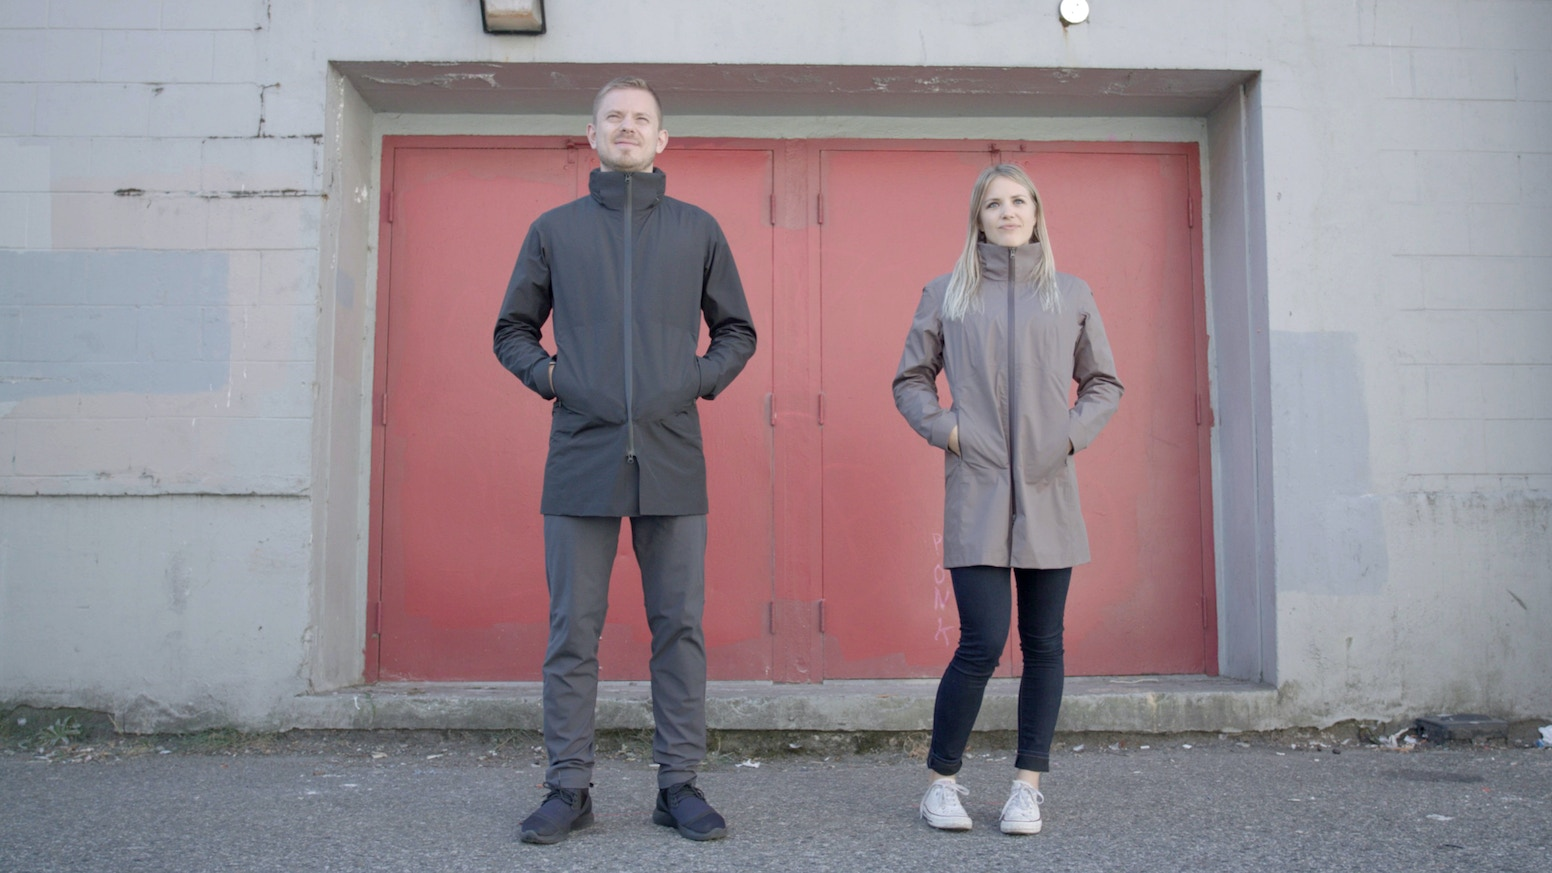 PANTAVUS | Truly Versatile Jackets for Active Urban Life